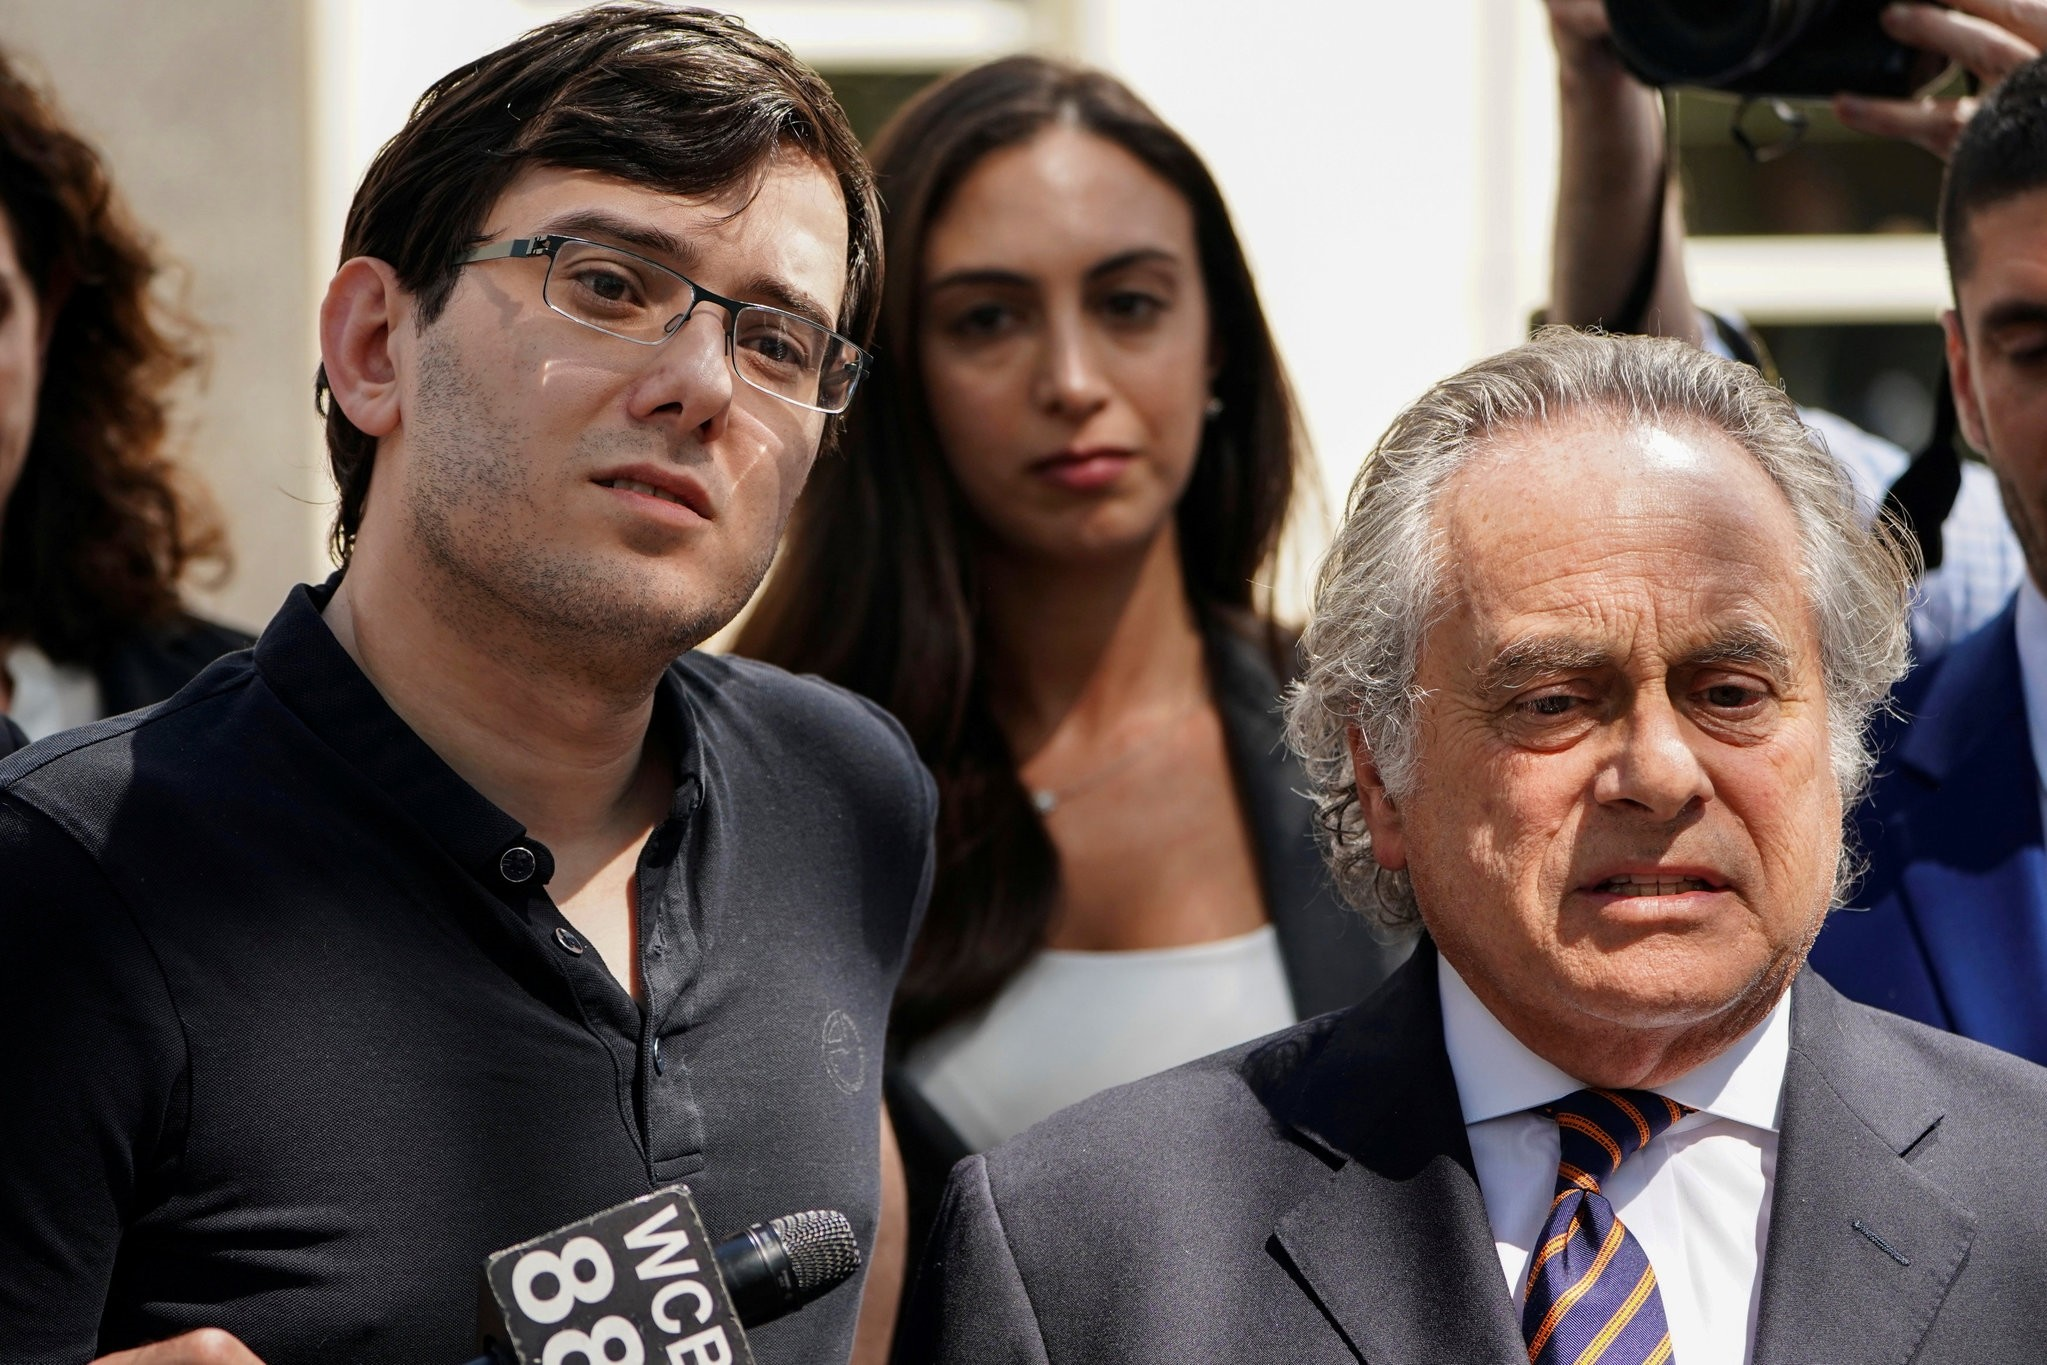 Former drug company executive Martin Shkreli stands with his attorney Benjamin Brafman after exiting U.S. District Court upon being convicted of securities fraud. (REUTERS Photo)